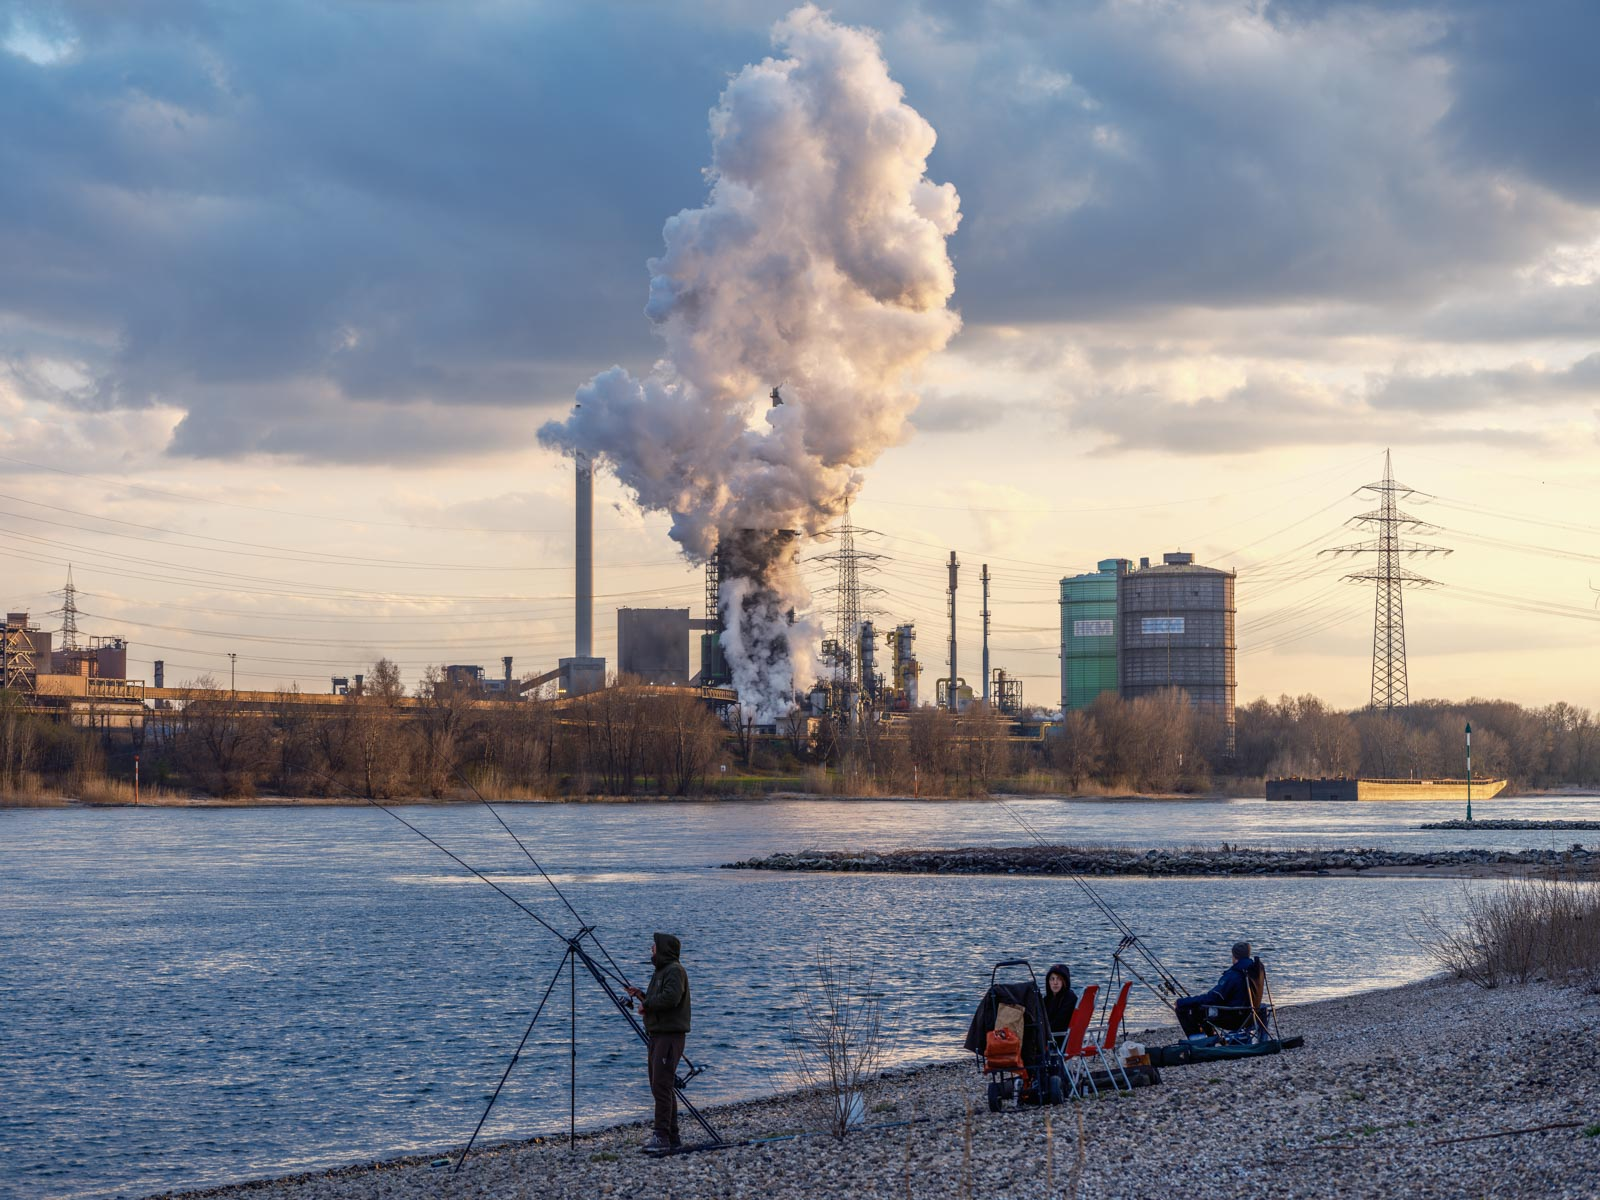 Anglers on the Rhine in Duisburg-Rheinhausen opposite the Krupp Mannesmann steelworks in March 2021 (Germany).